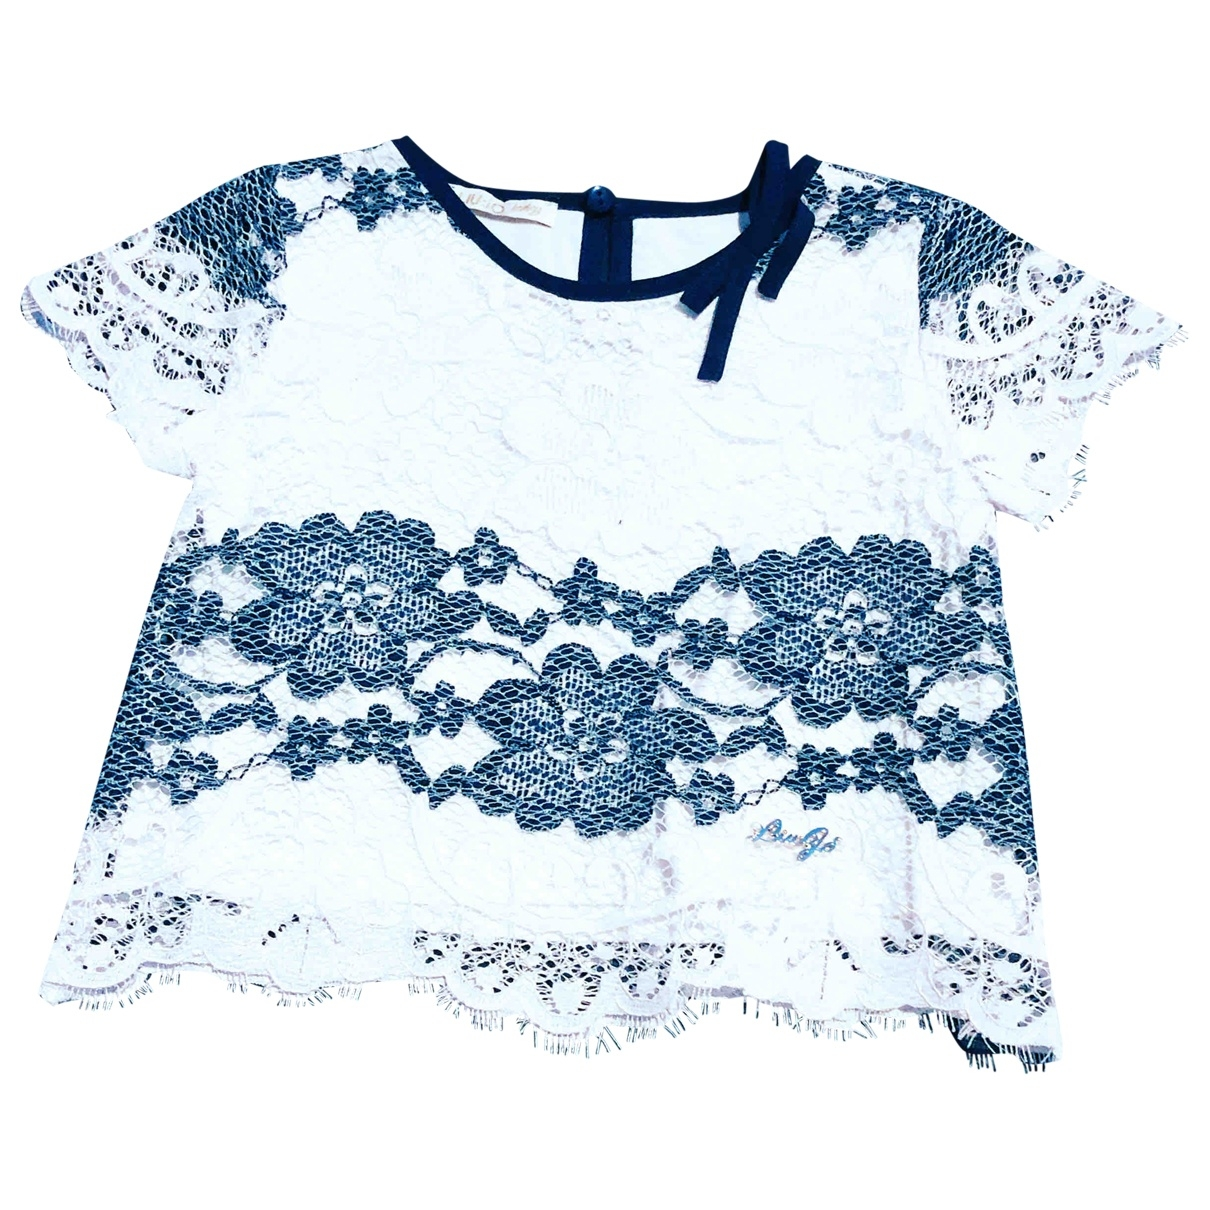 Liu.jo \N White Lace  top for Kids 2 years - up to 86cm FR